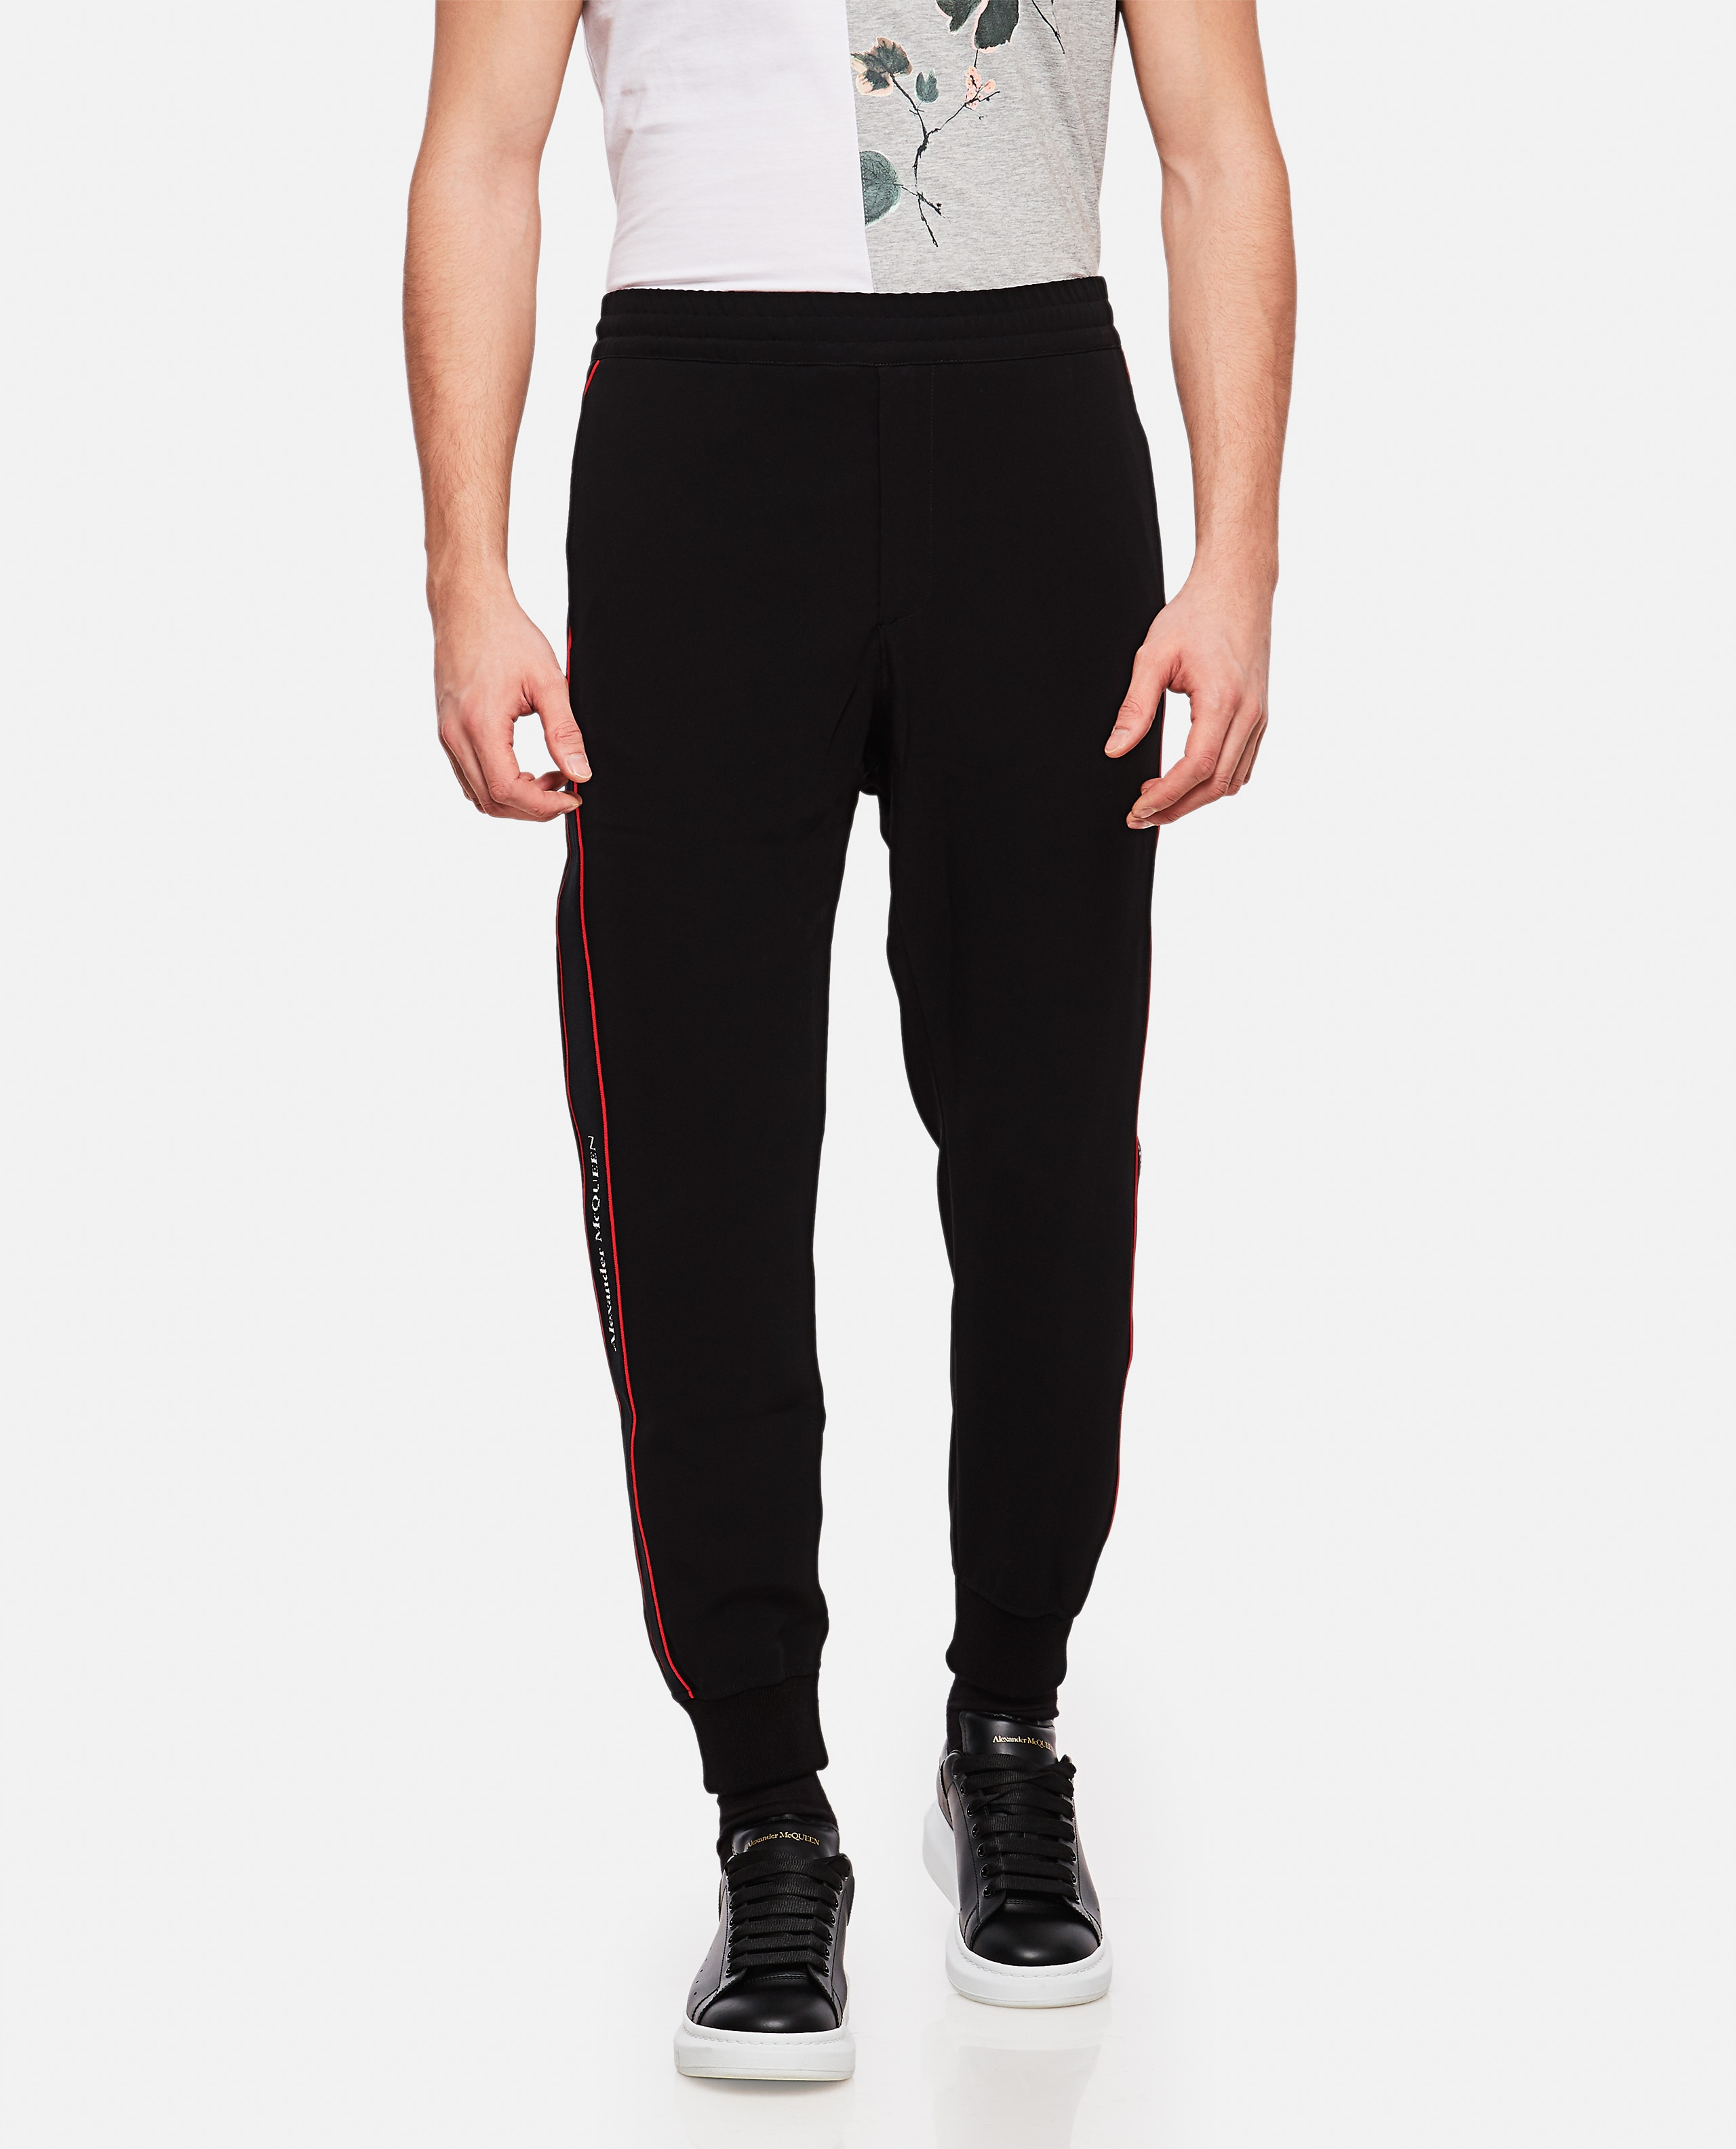 Sports trousers with side tape Men Alexander McQueen 000214950031908 1